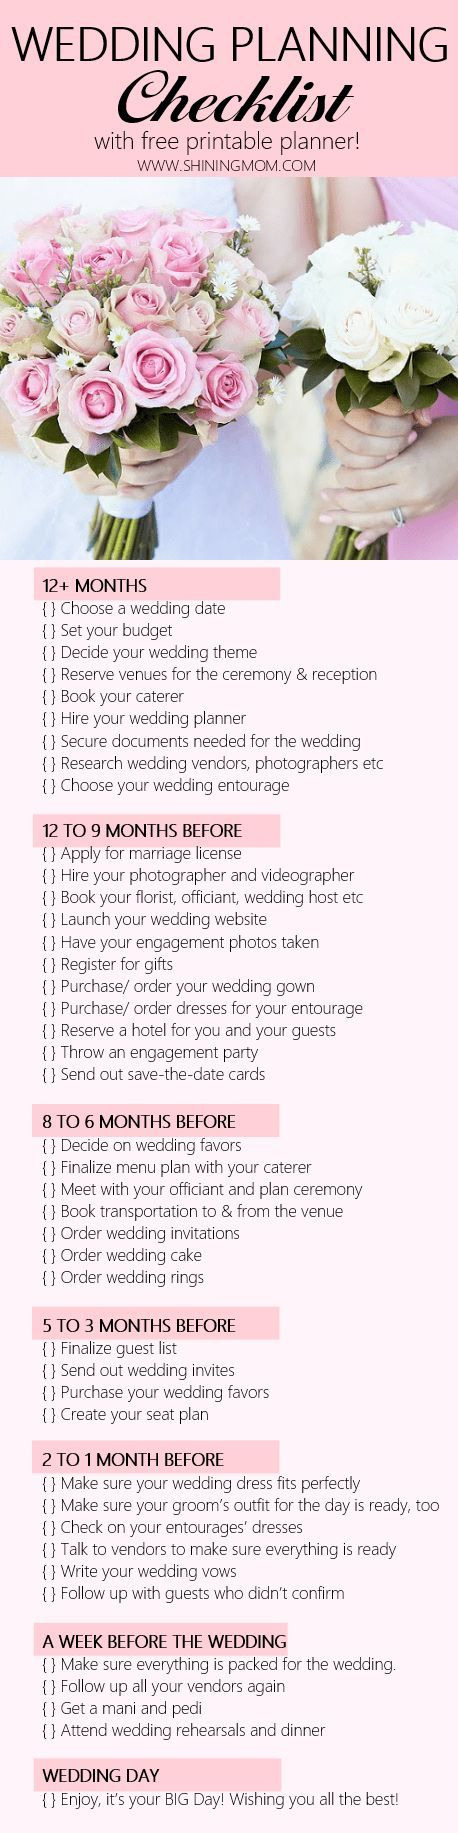 Free Printable Wedding Planner With Checklist  Free Printable